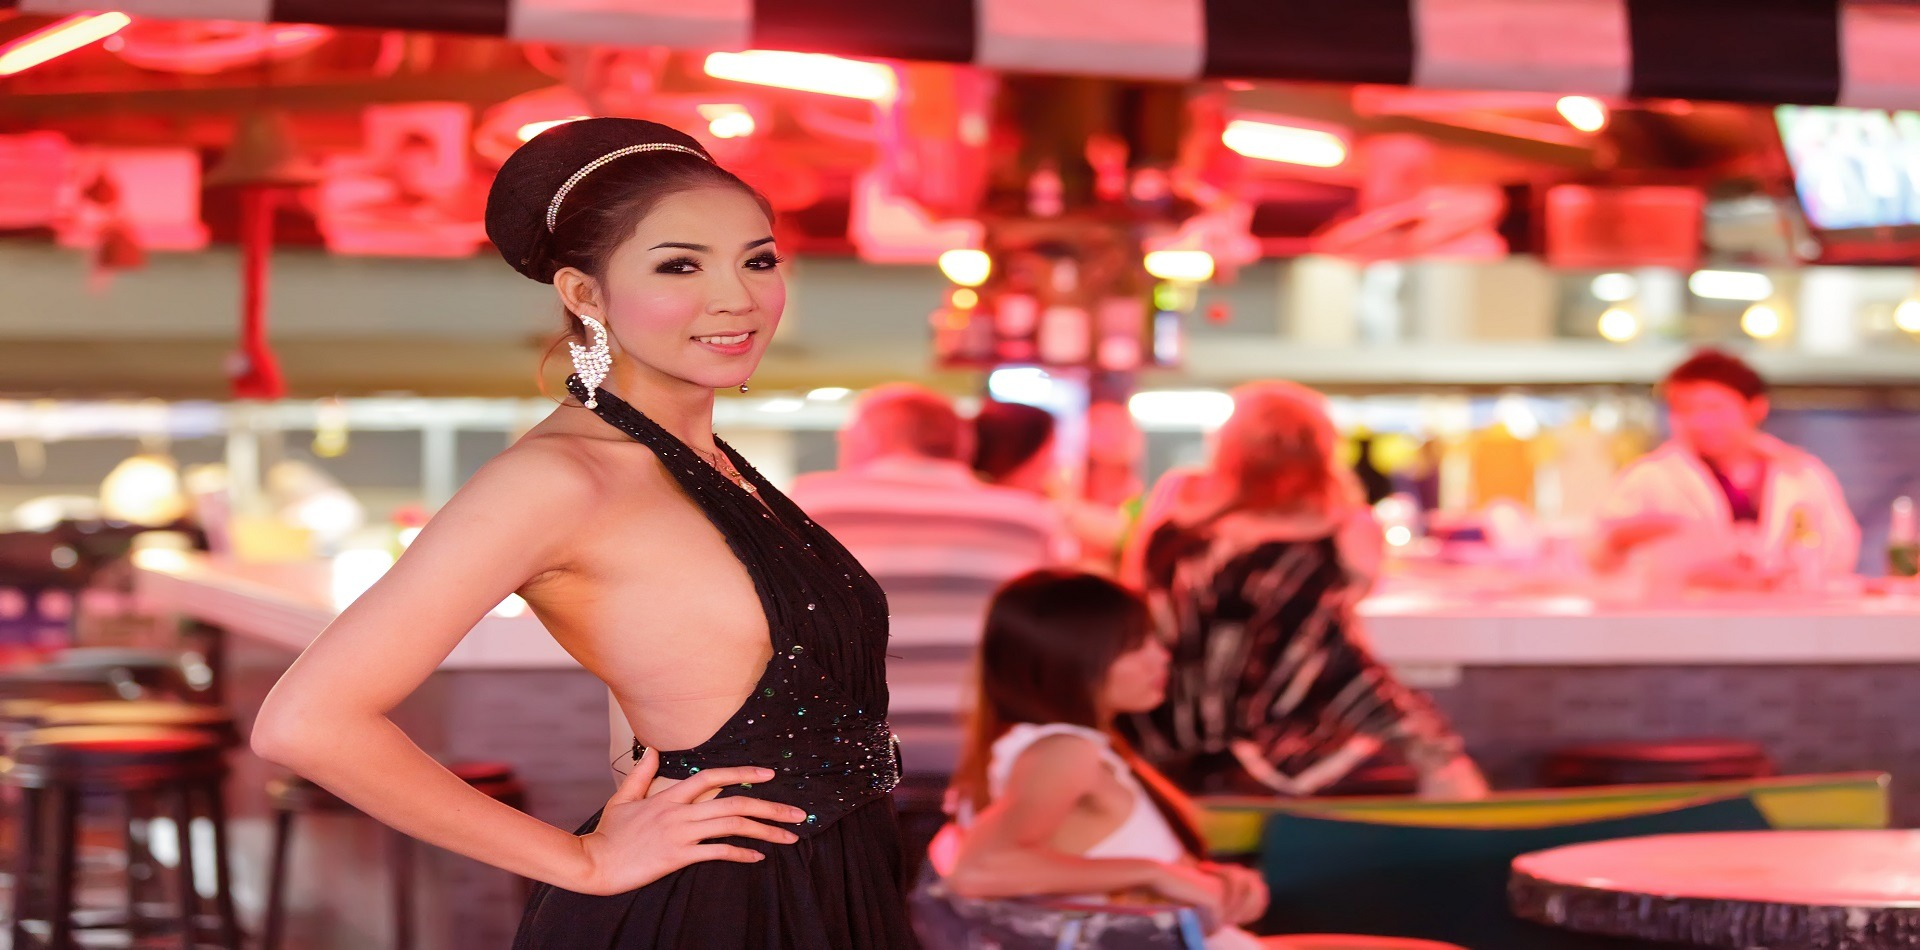 Thai ladyboy posing in gogo bar, pattaya, thailand in a show